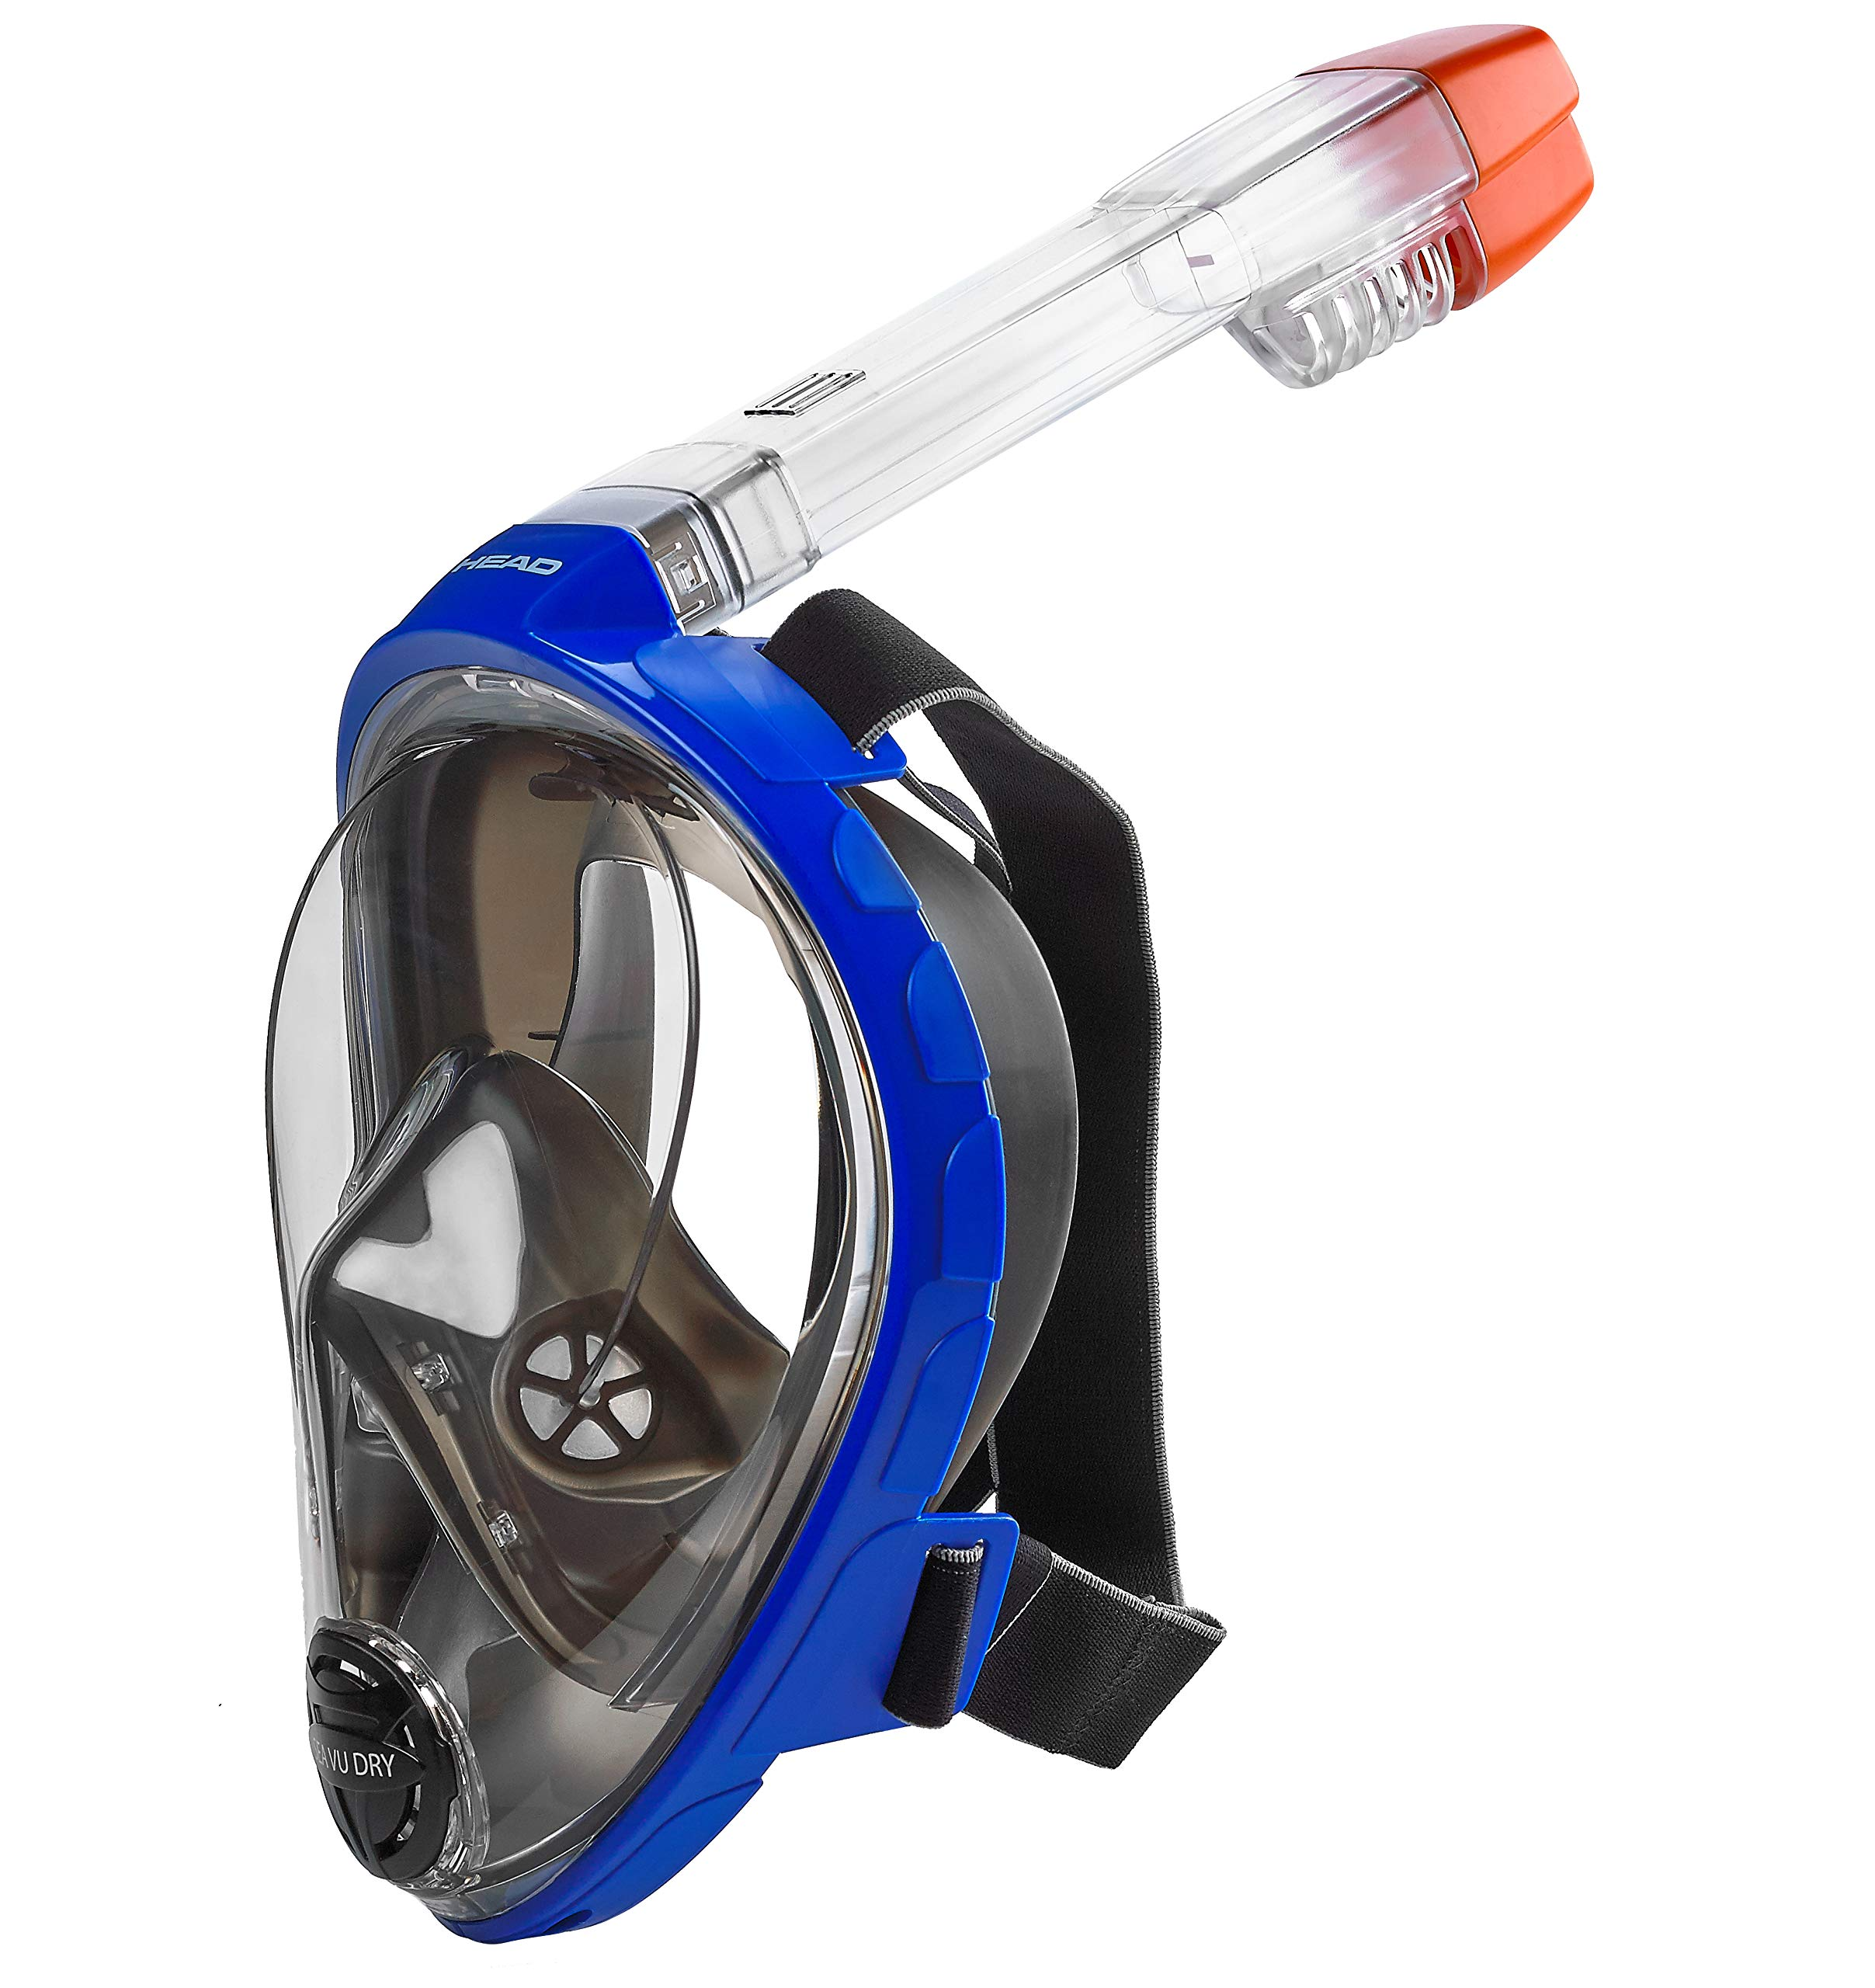 HEAD by Mares Seaview 180° Panoramic View Full Face Snorkeling Mask, Blue/Black Silicone, XS